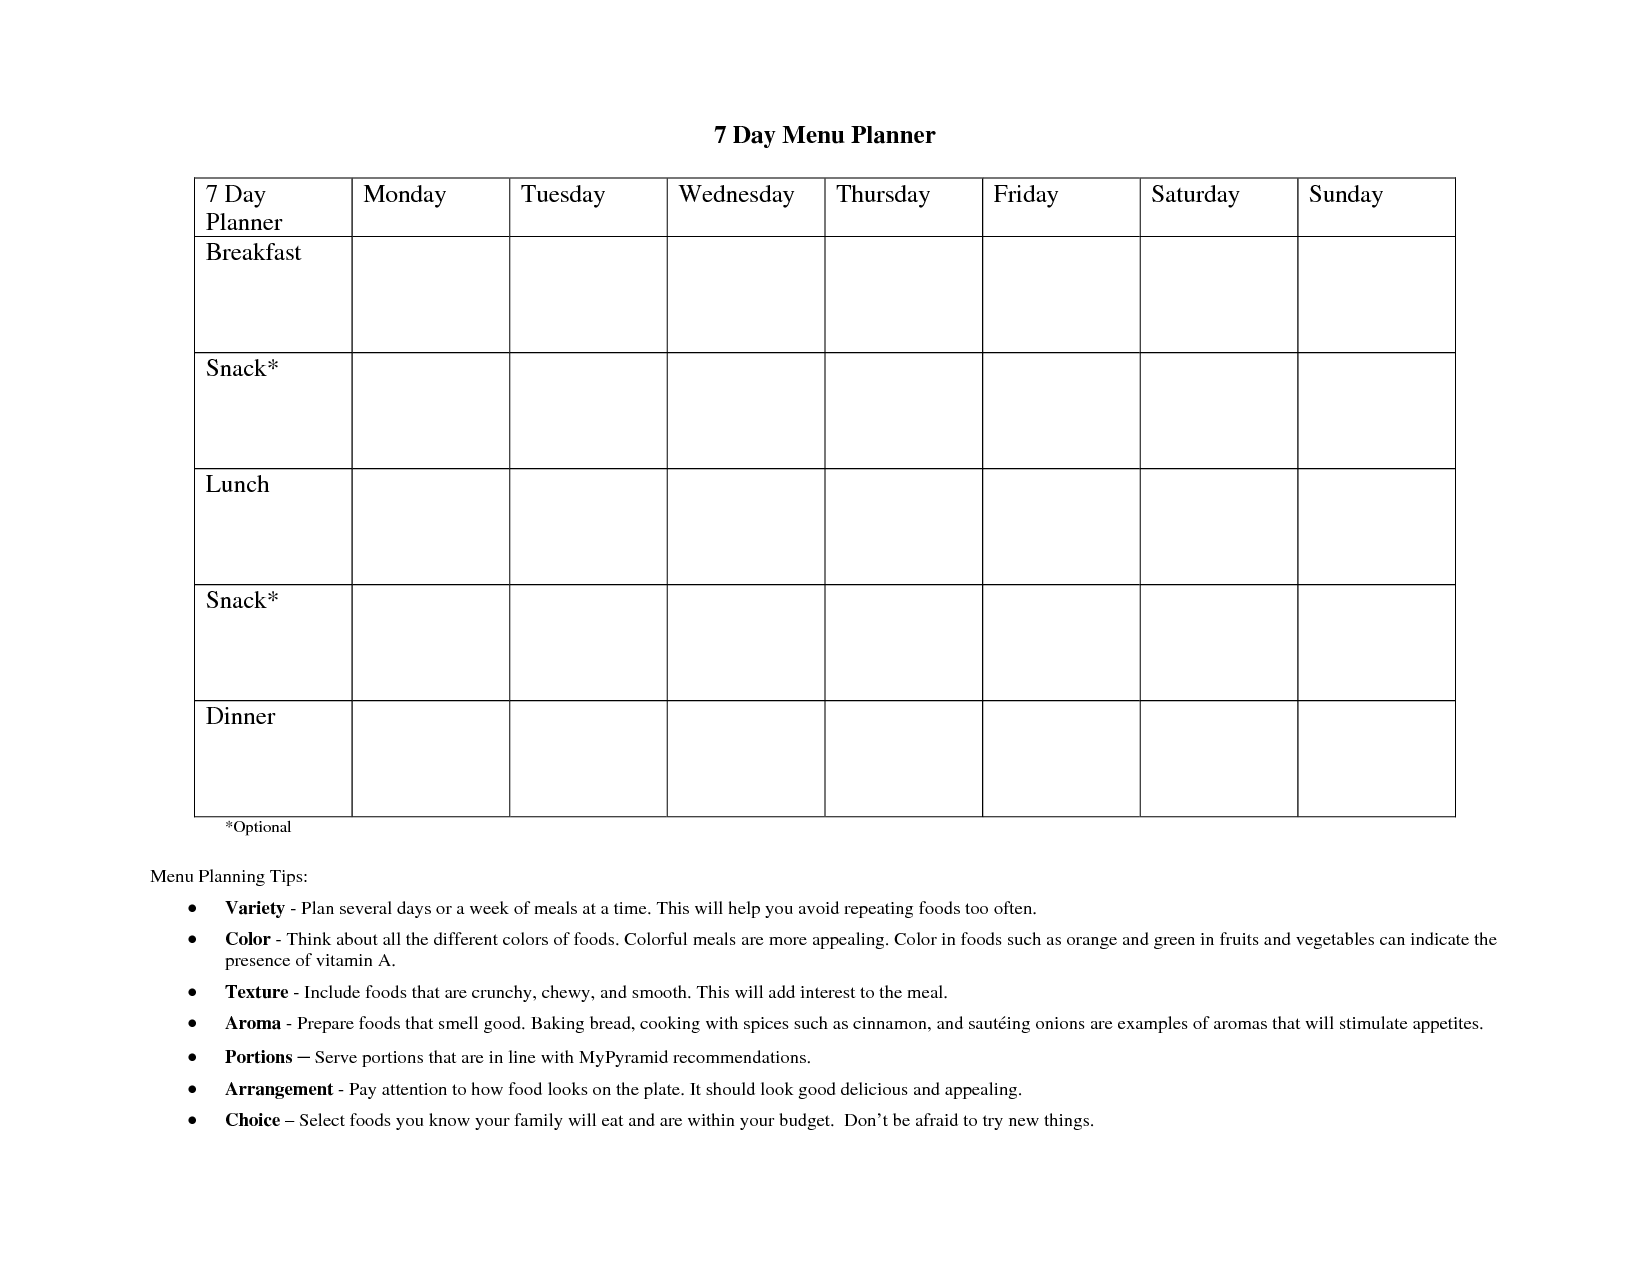 FREE 7 Day Meal Planning Template